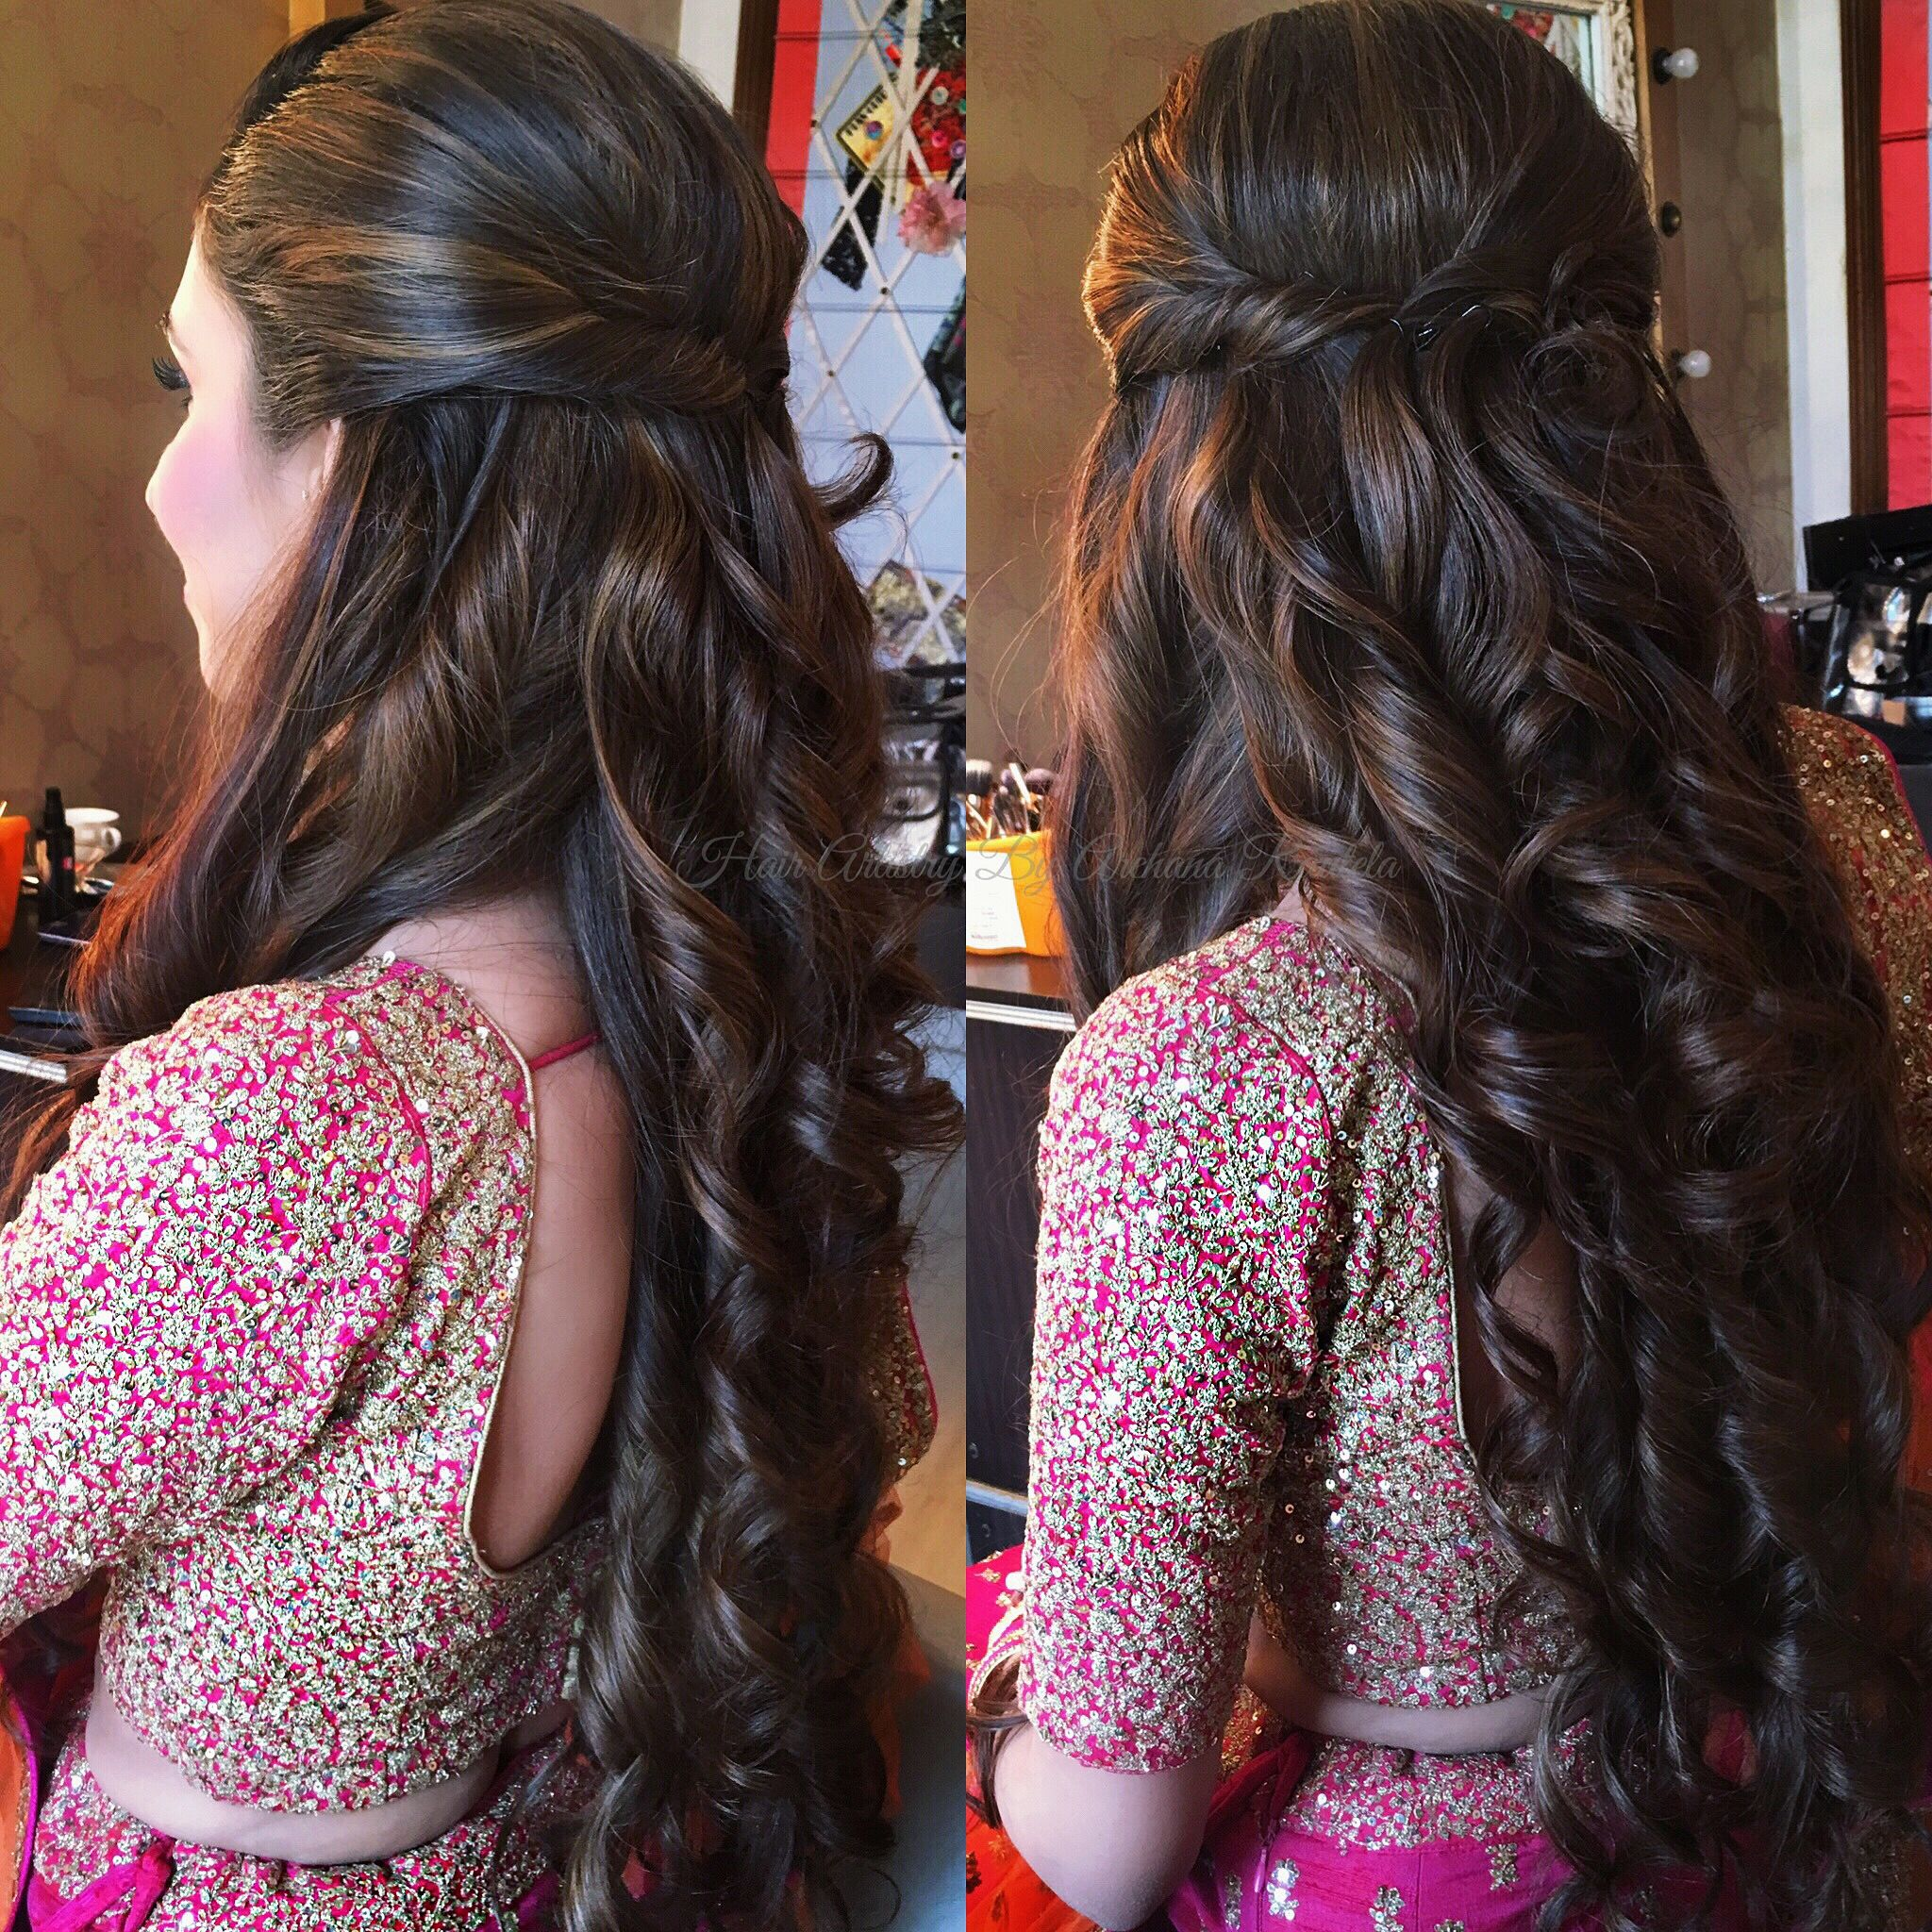 Long Hair Love Hair Artistry By Archana Rautela Engagement Hairstyles Hair Styles Party Hairstyles